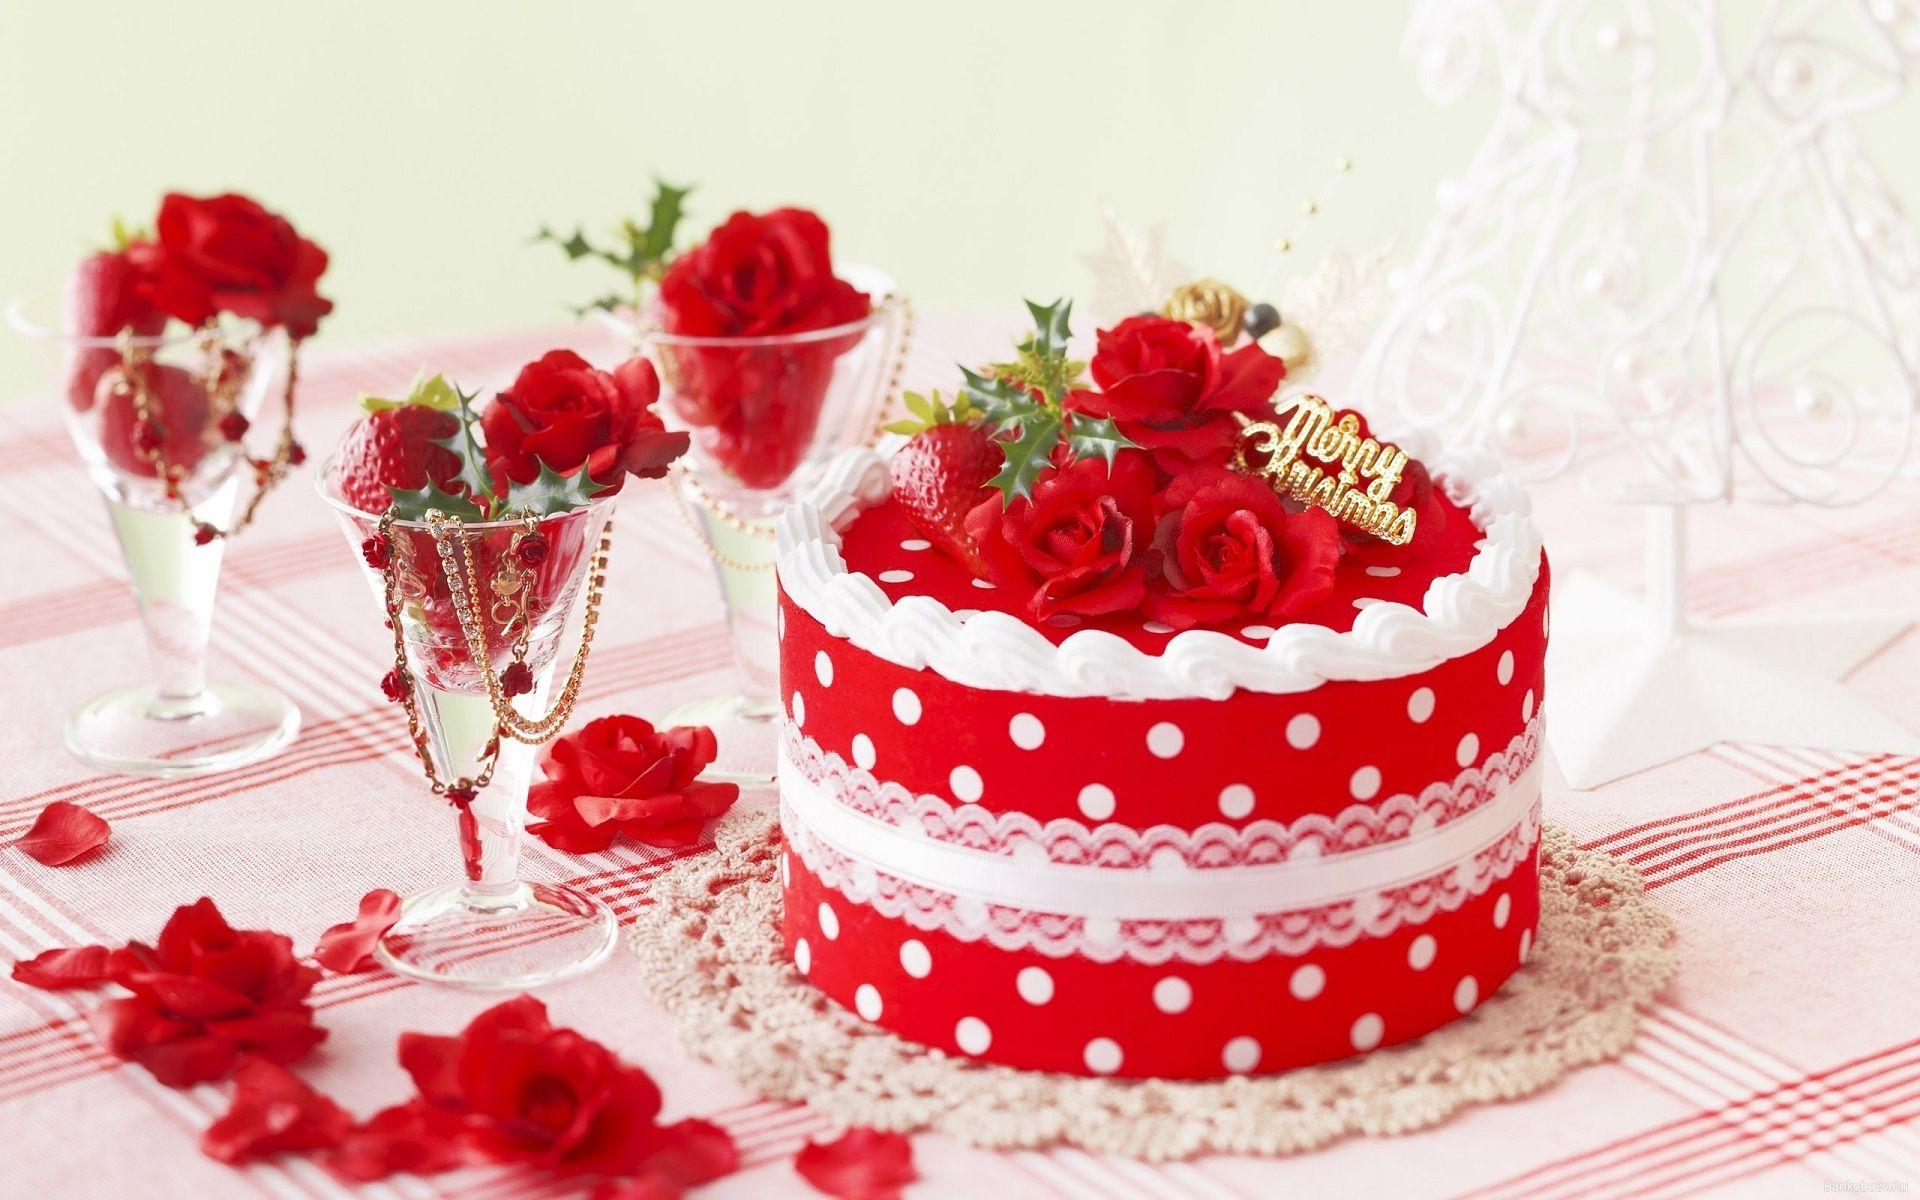 Best hd images of birthday cakes